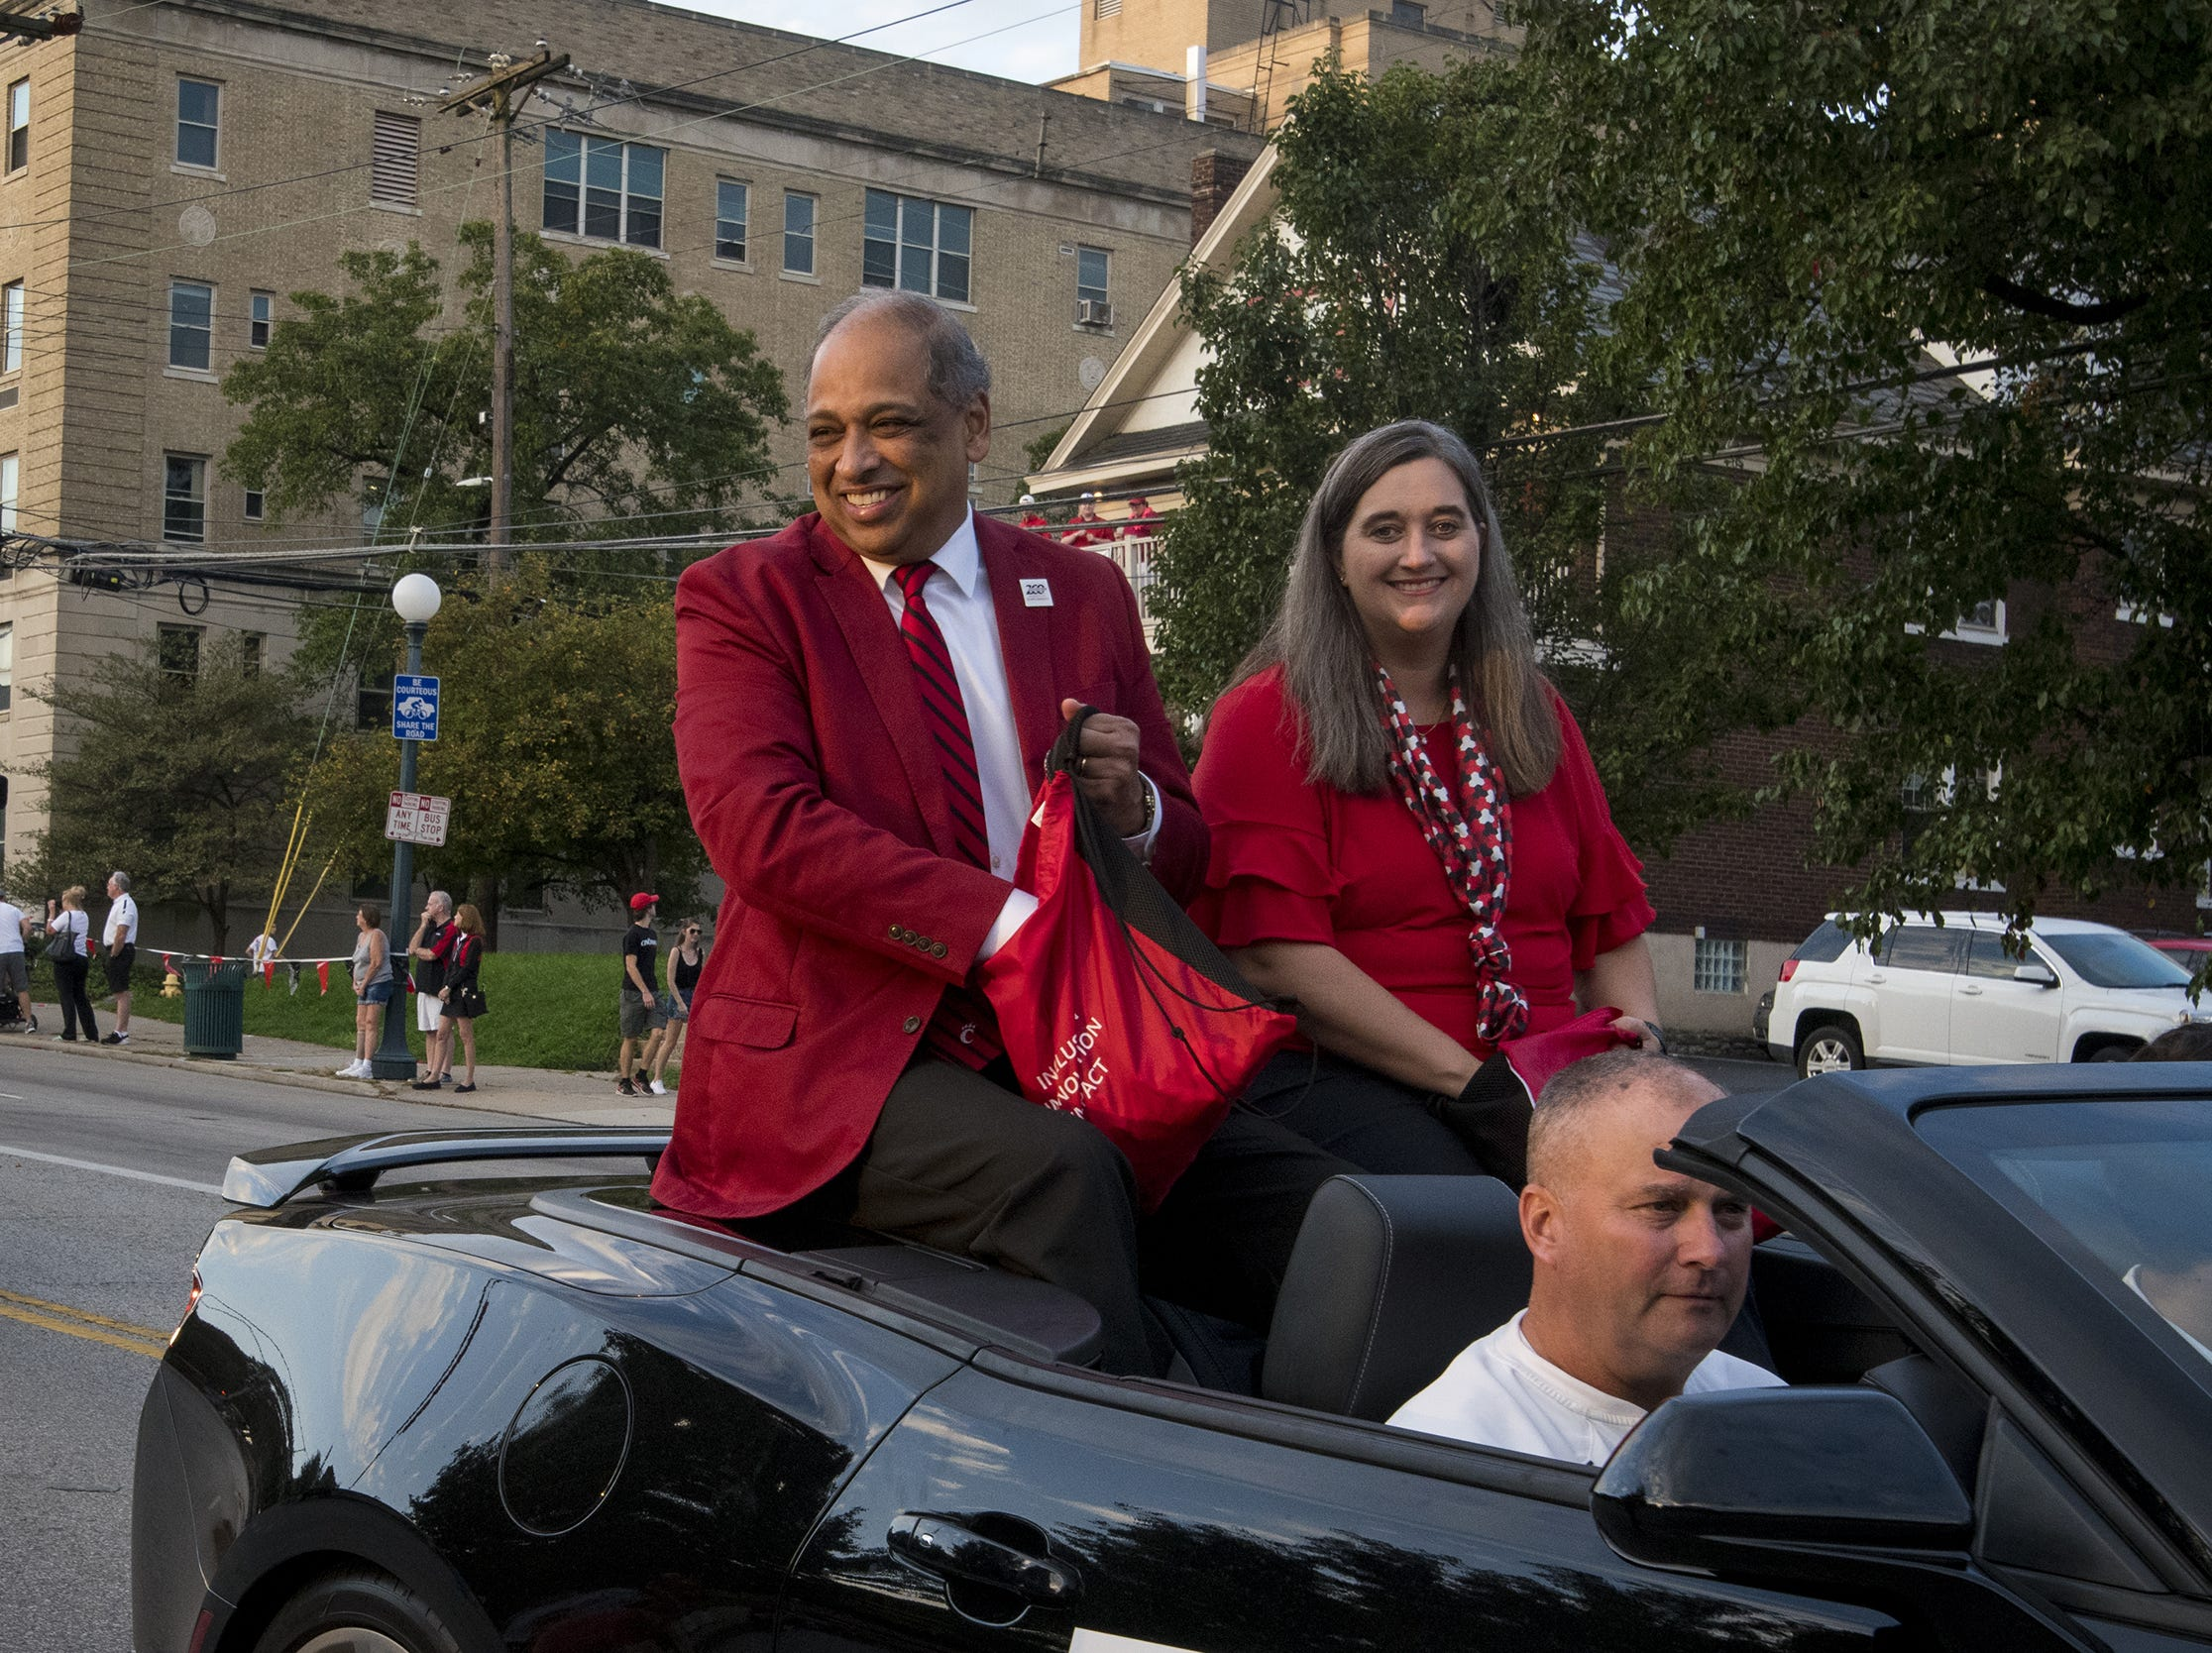 University of Cincinnati President Neville Pinto tosses candy during the annual Homecoming parade.